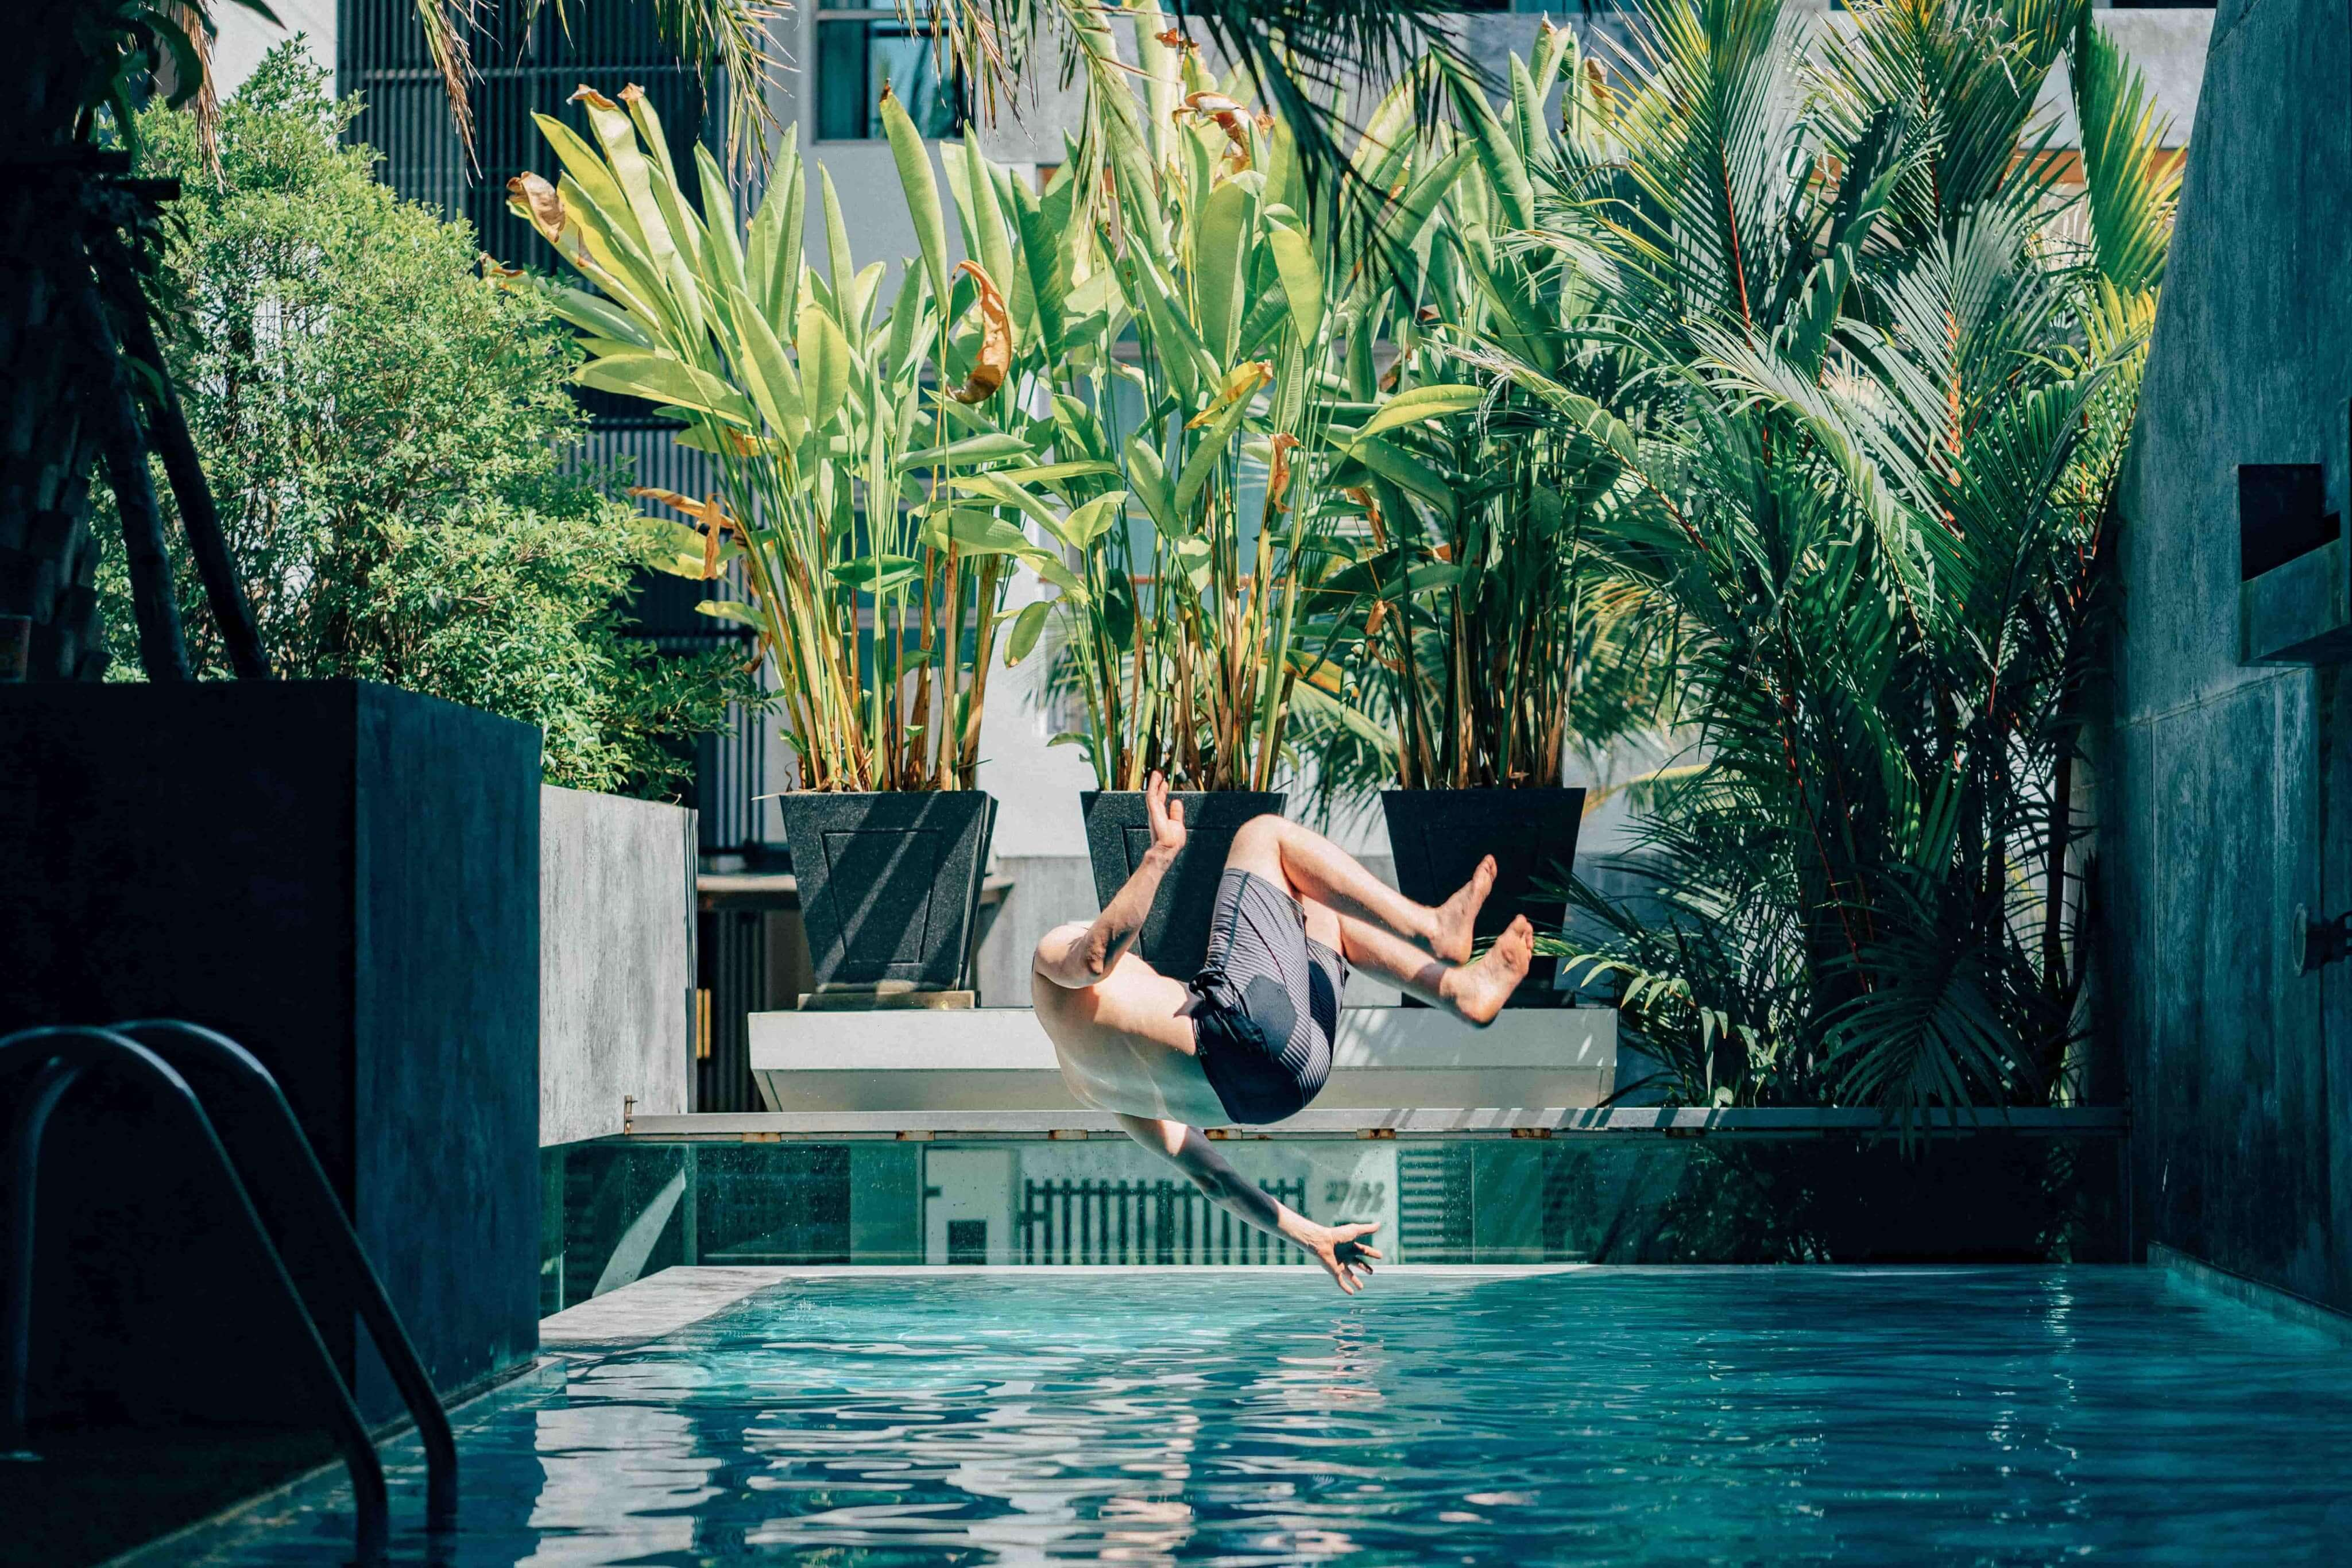 a person diving happily in to the clean and fresh pool